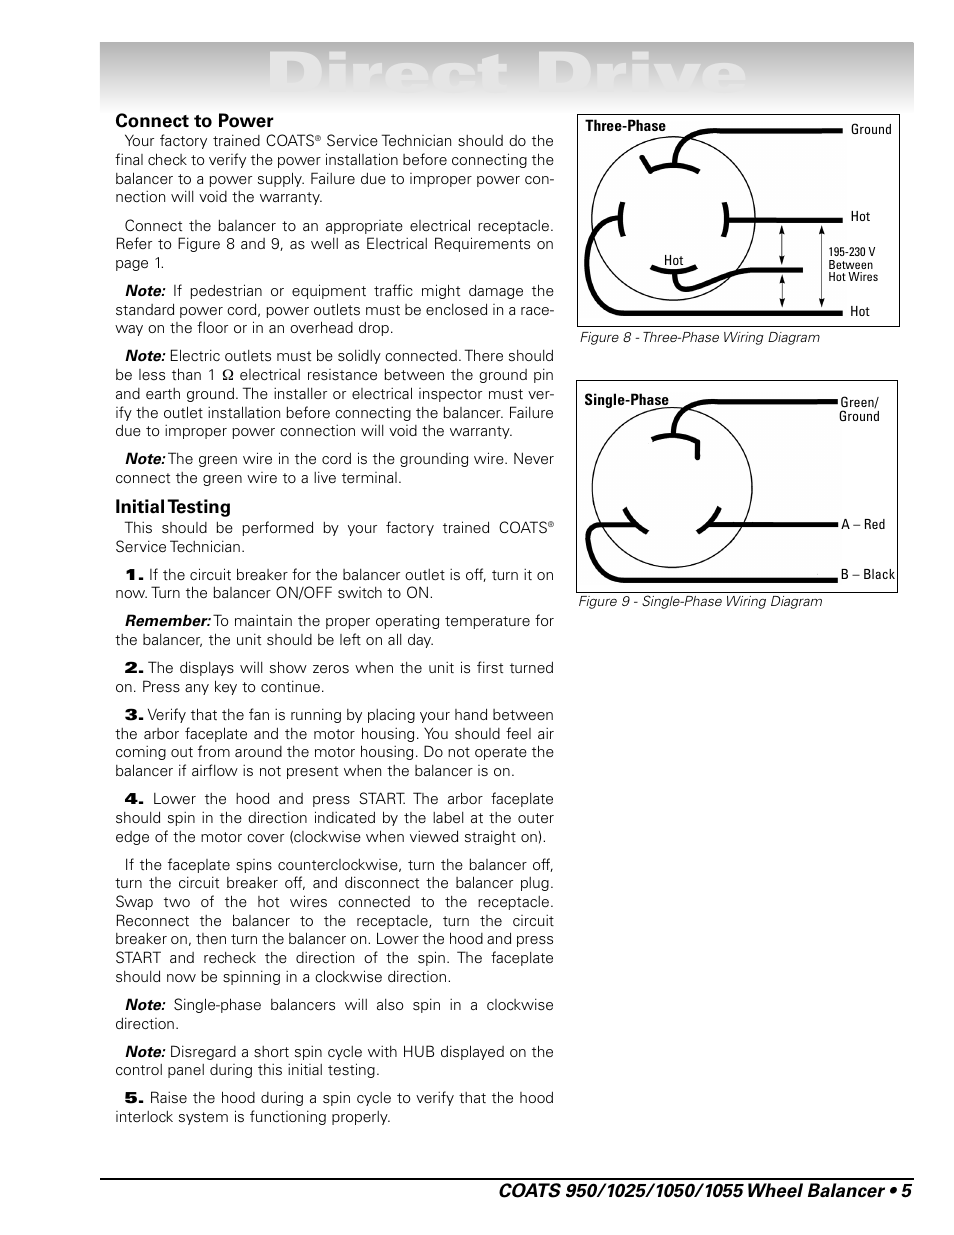 medium resolution of direct drive coats 1055 balancer user manual page 11 24